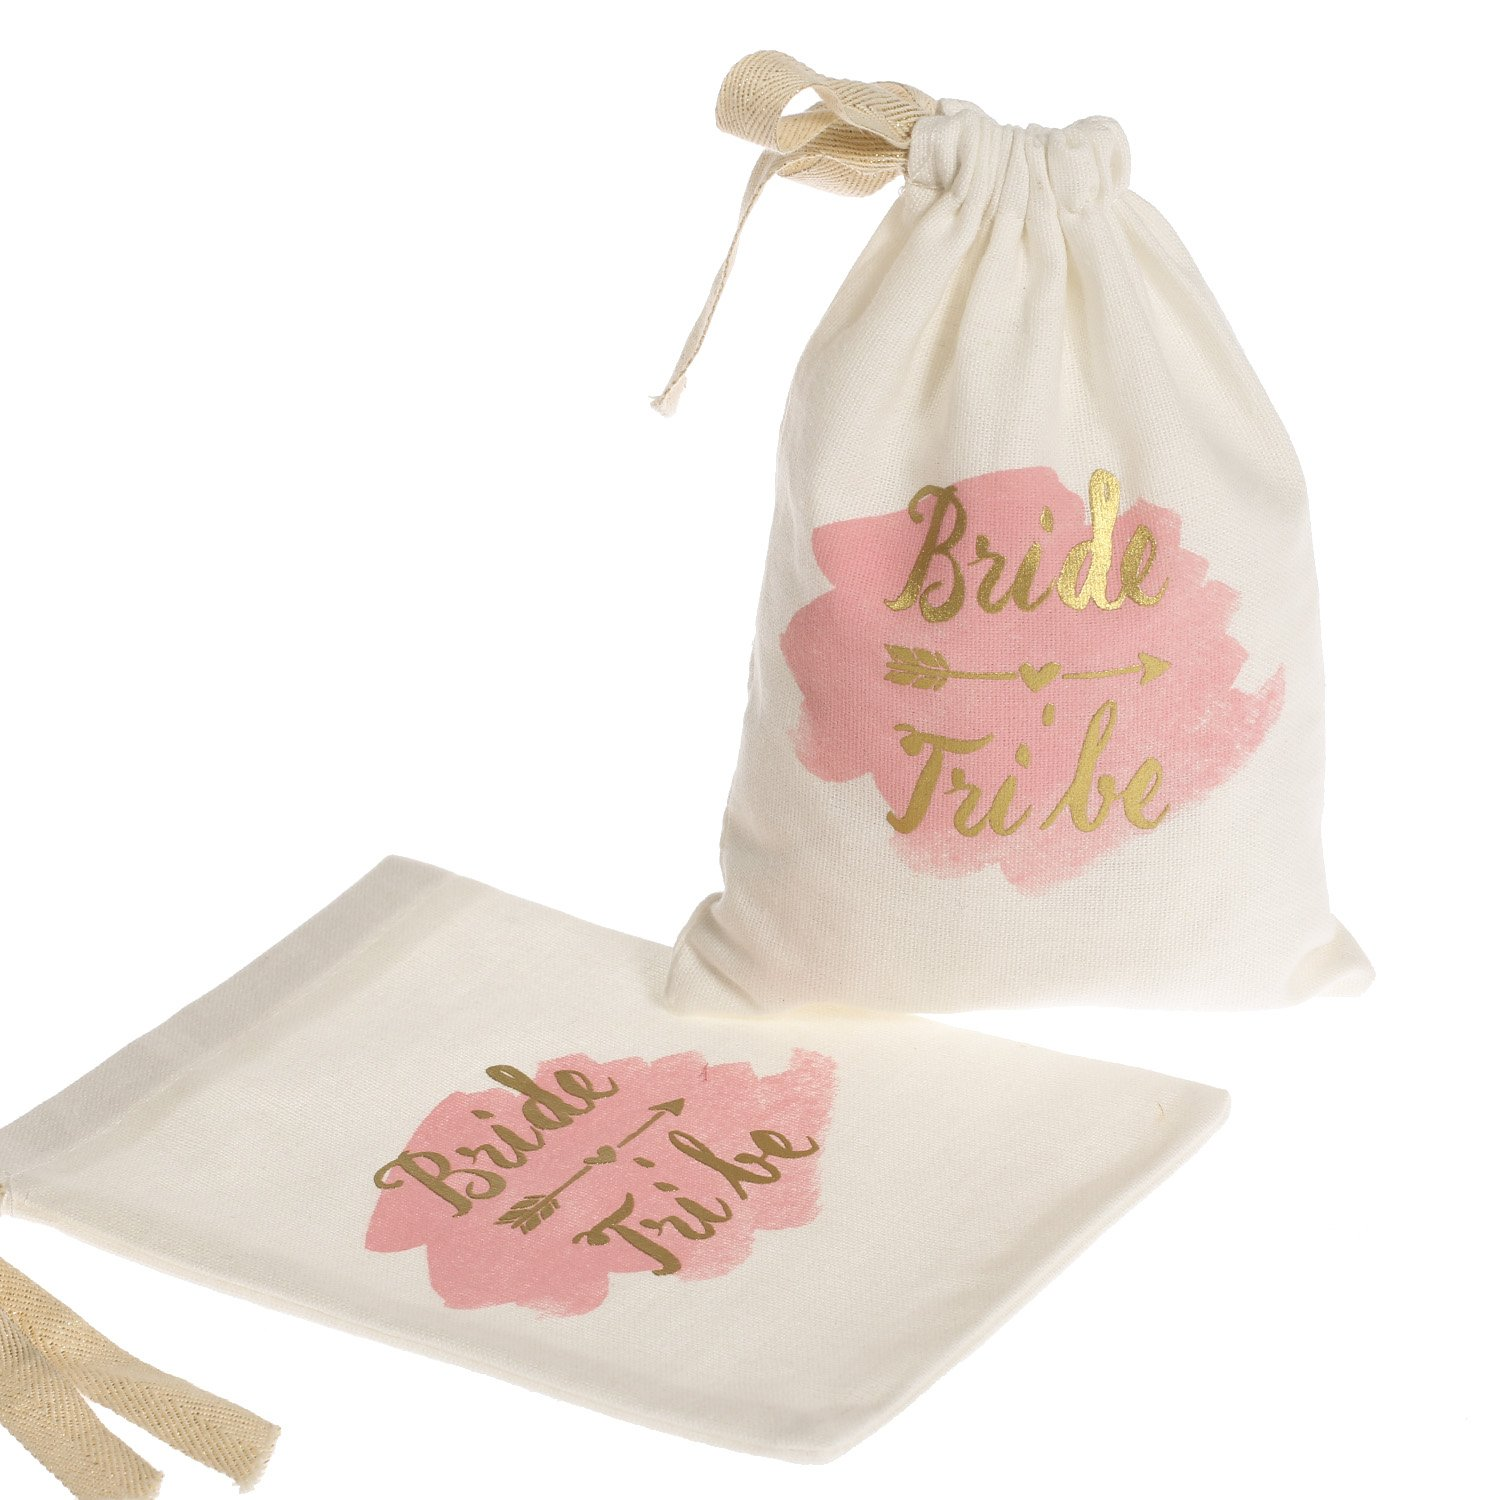 "Ling's Moment 10pcs 5""x7"" Gold Foil Bride Tribe Bridesmaid Gift Bags w/Pink Watercolor - Cotton Muslin Drawstring Bags for Bridal Shower Bachelorette Hen's Party Hangover Kit Hangovers Bag"